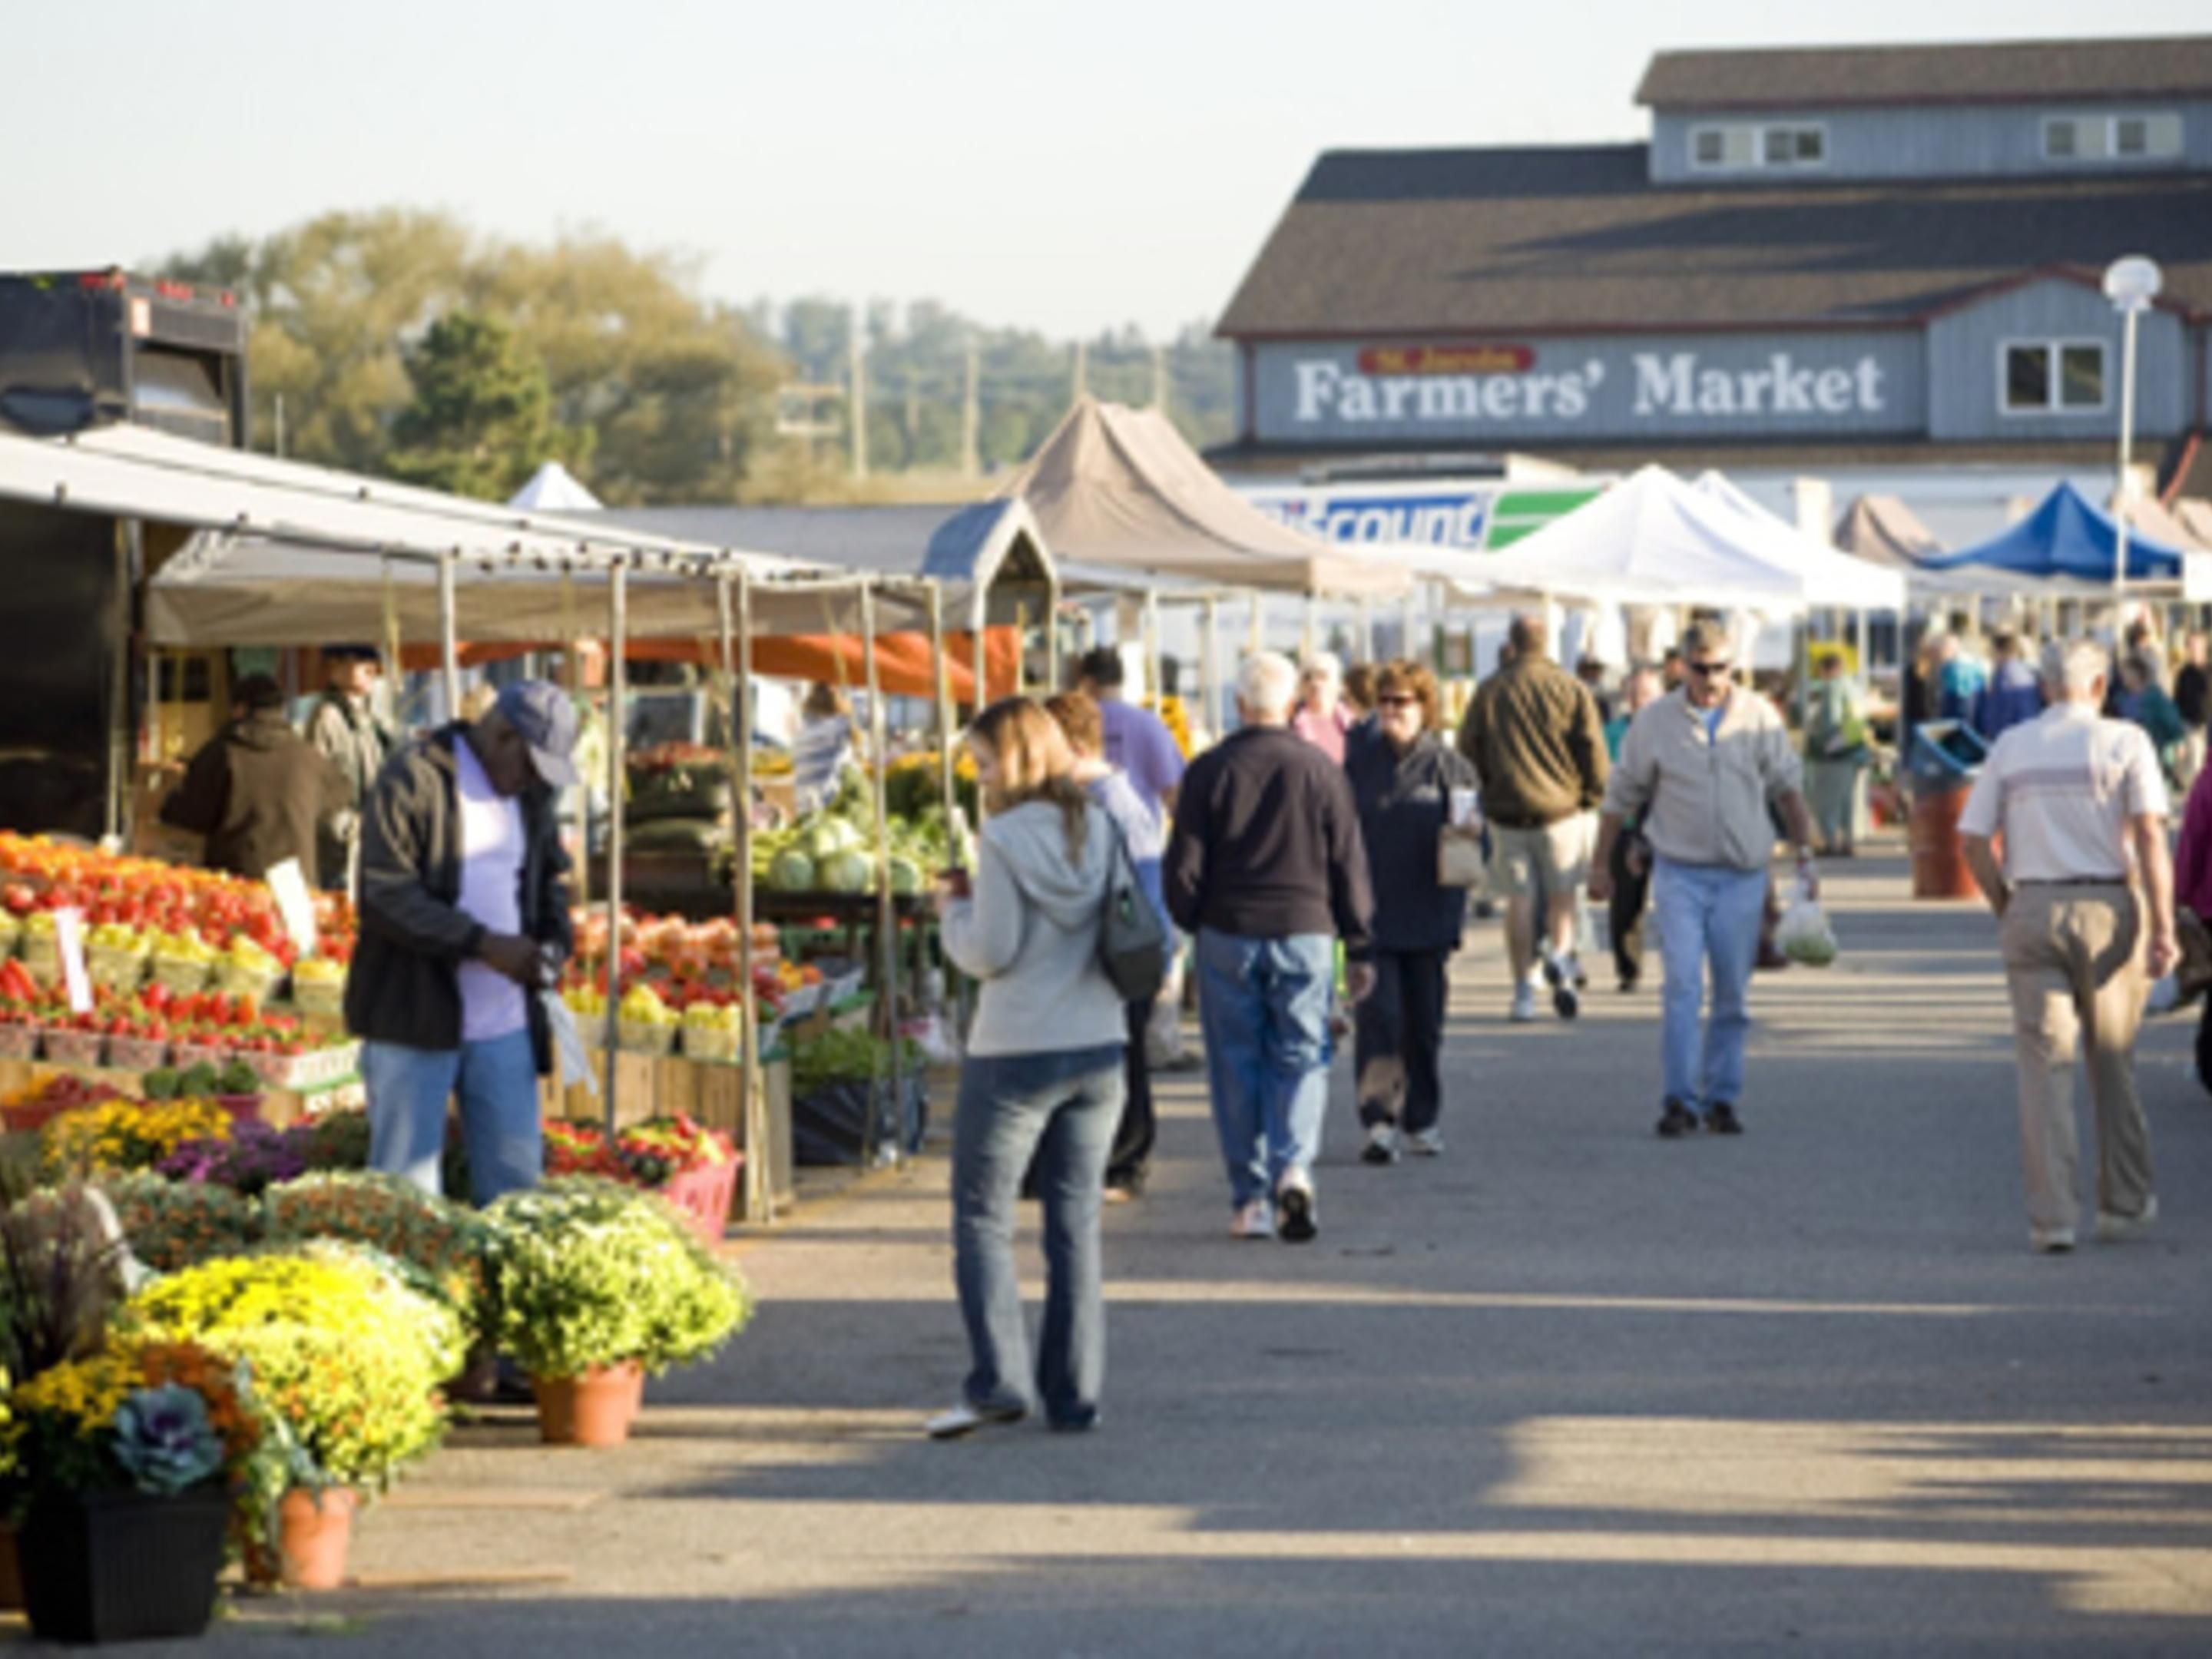 St. Jacobs Market- Located 15KM from Hotel